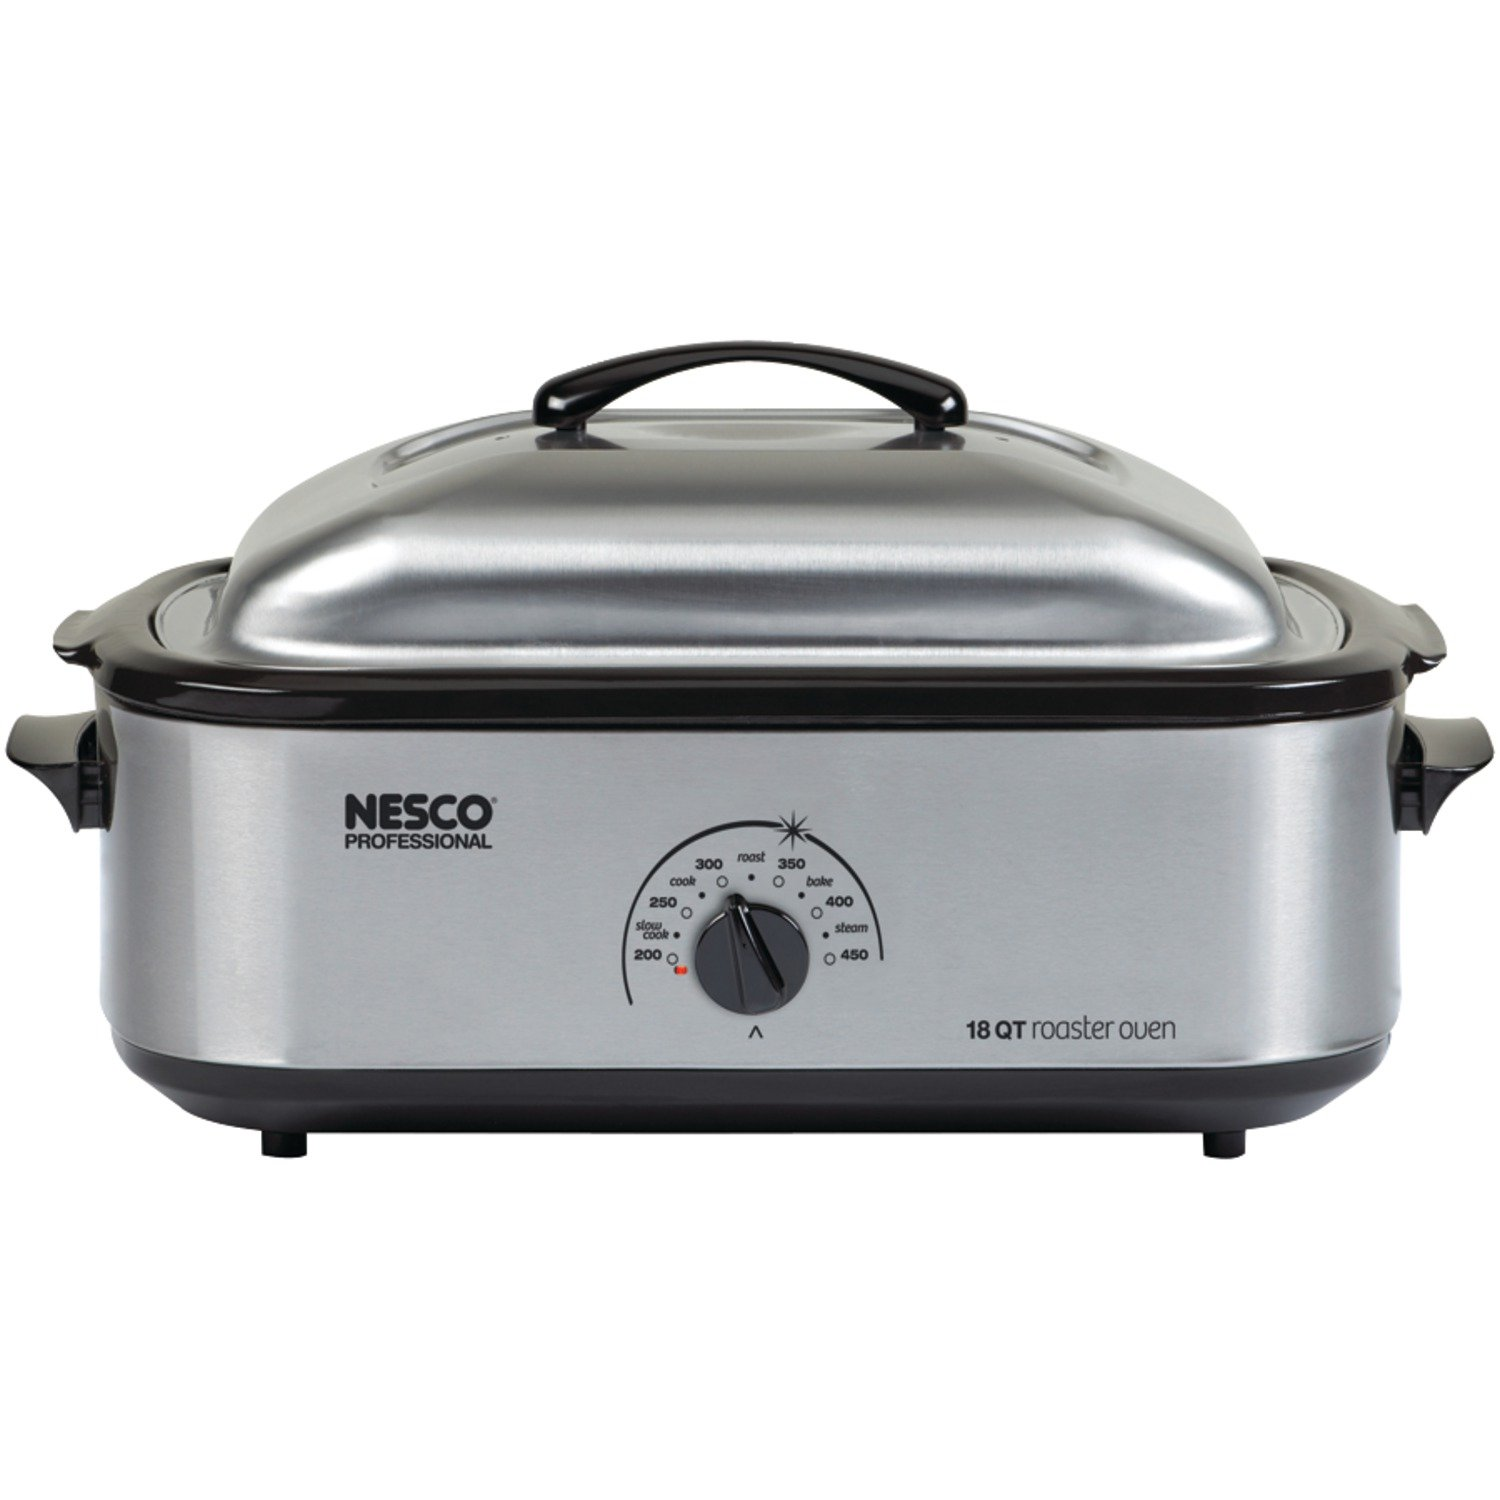 18 Qt Roaster Stainless Steel Non-stick